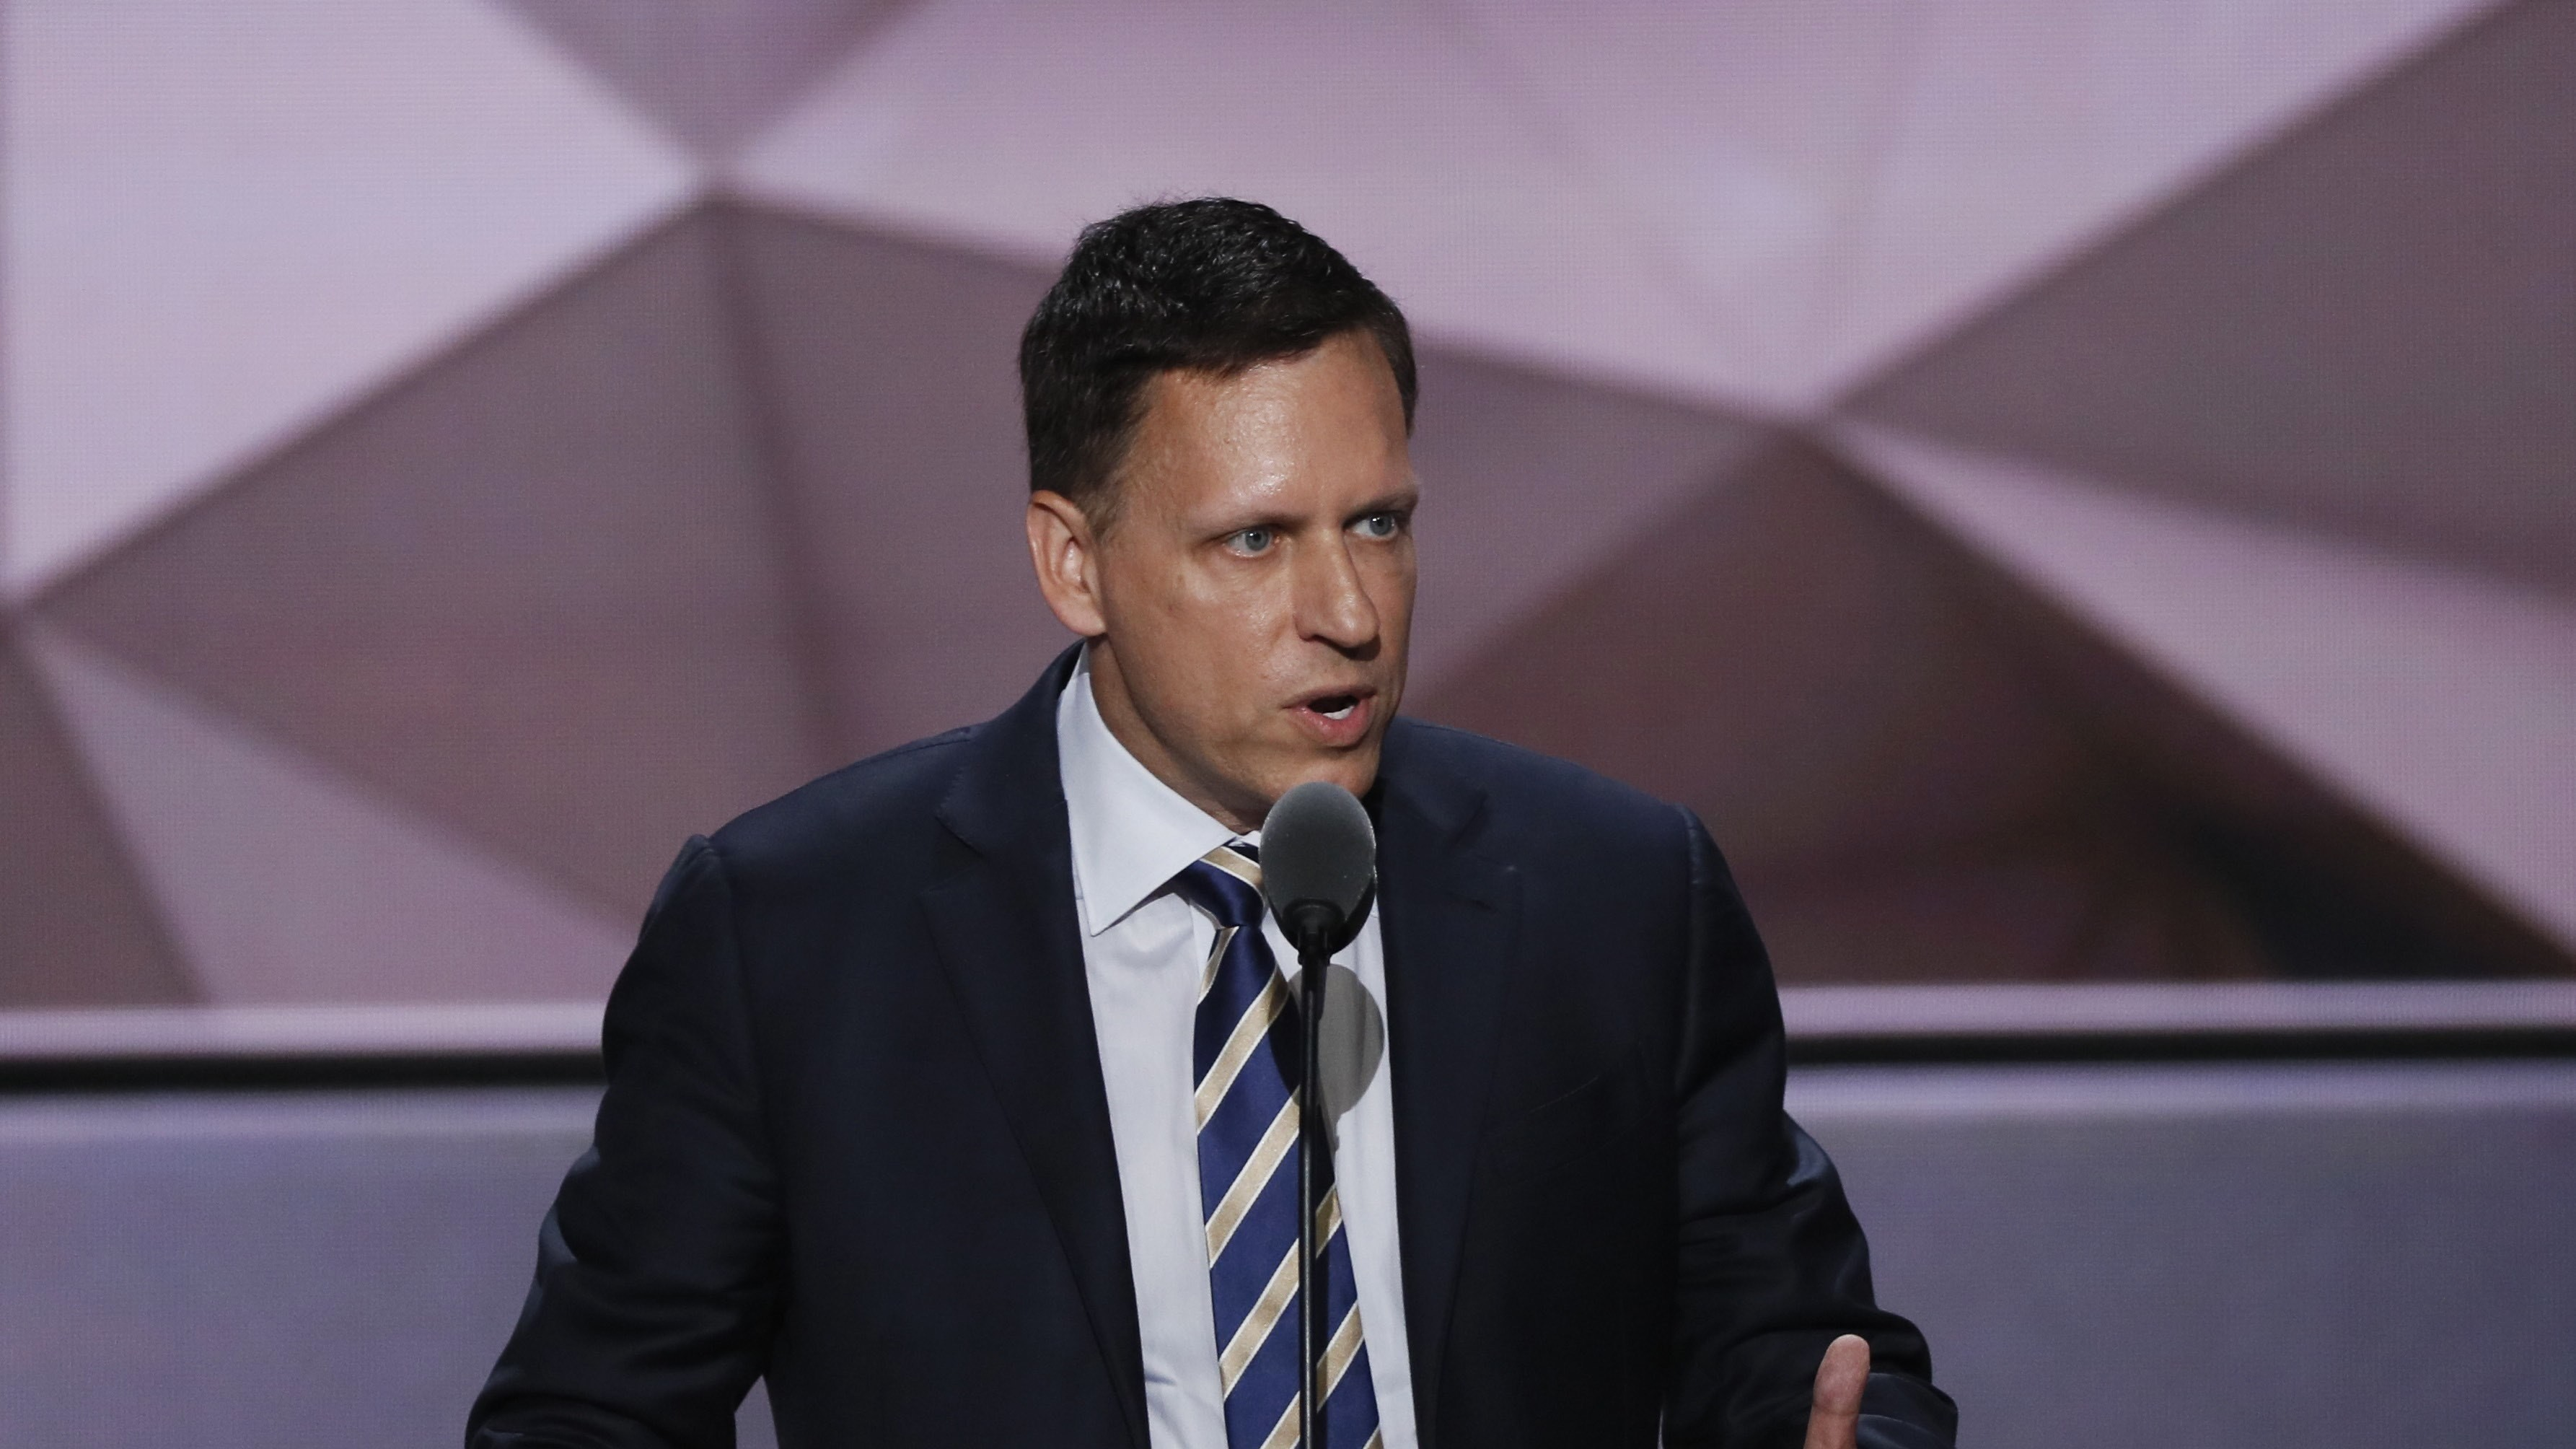 The US is suing Peter Thiel's secretive data startup for discriminating against Asians